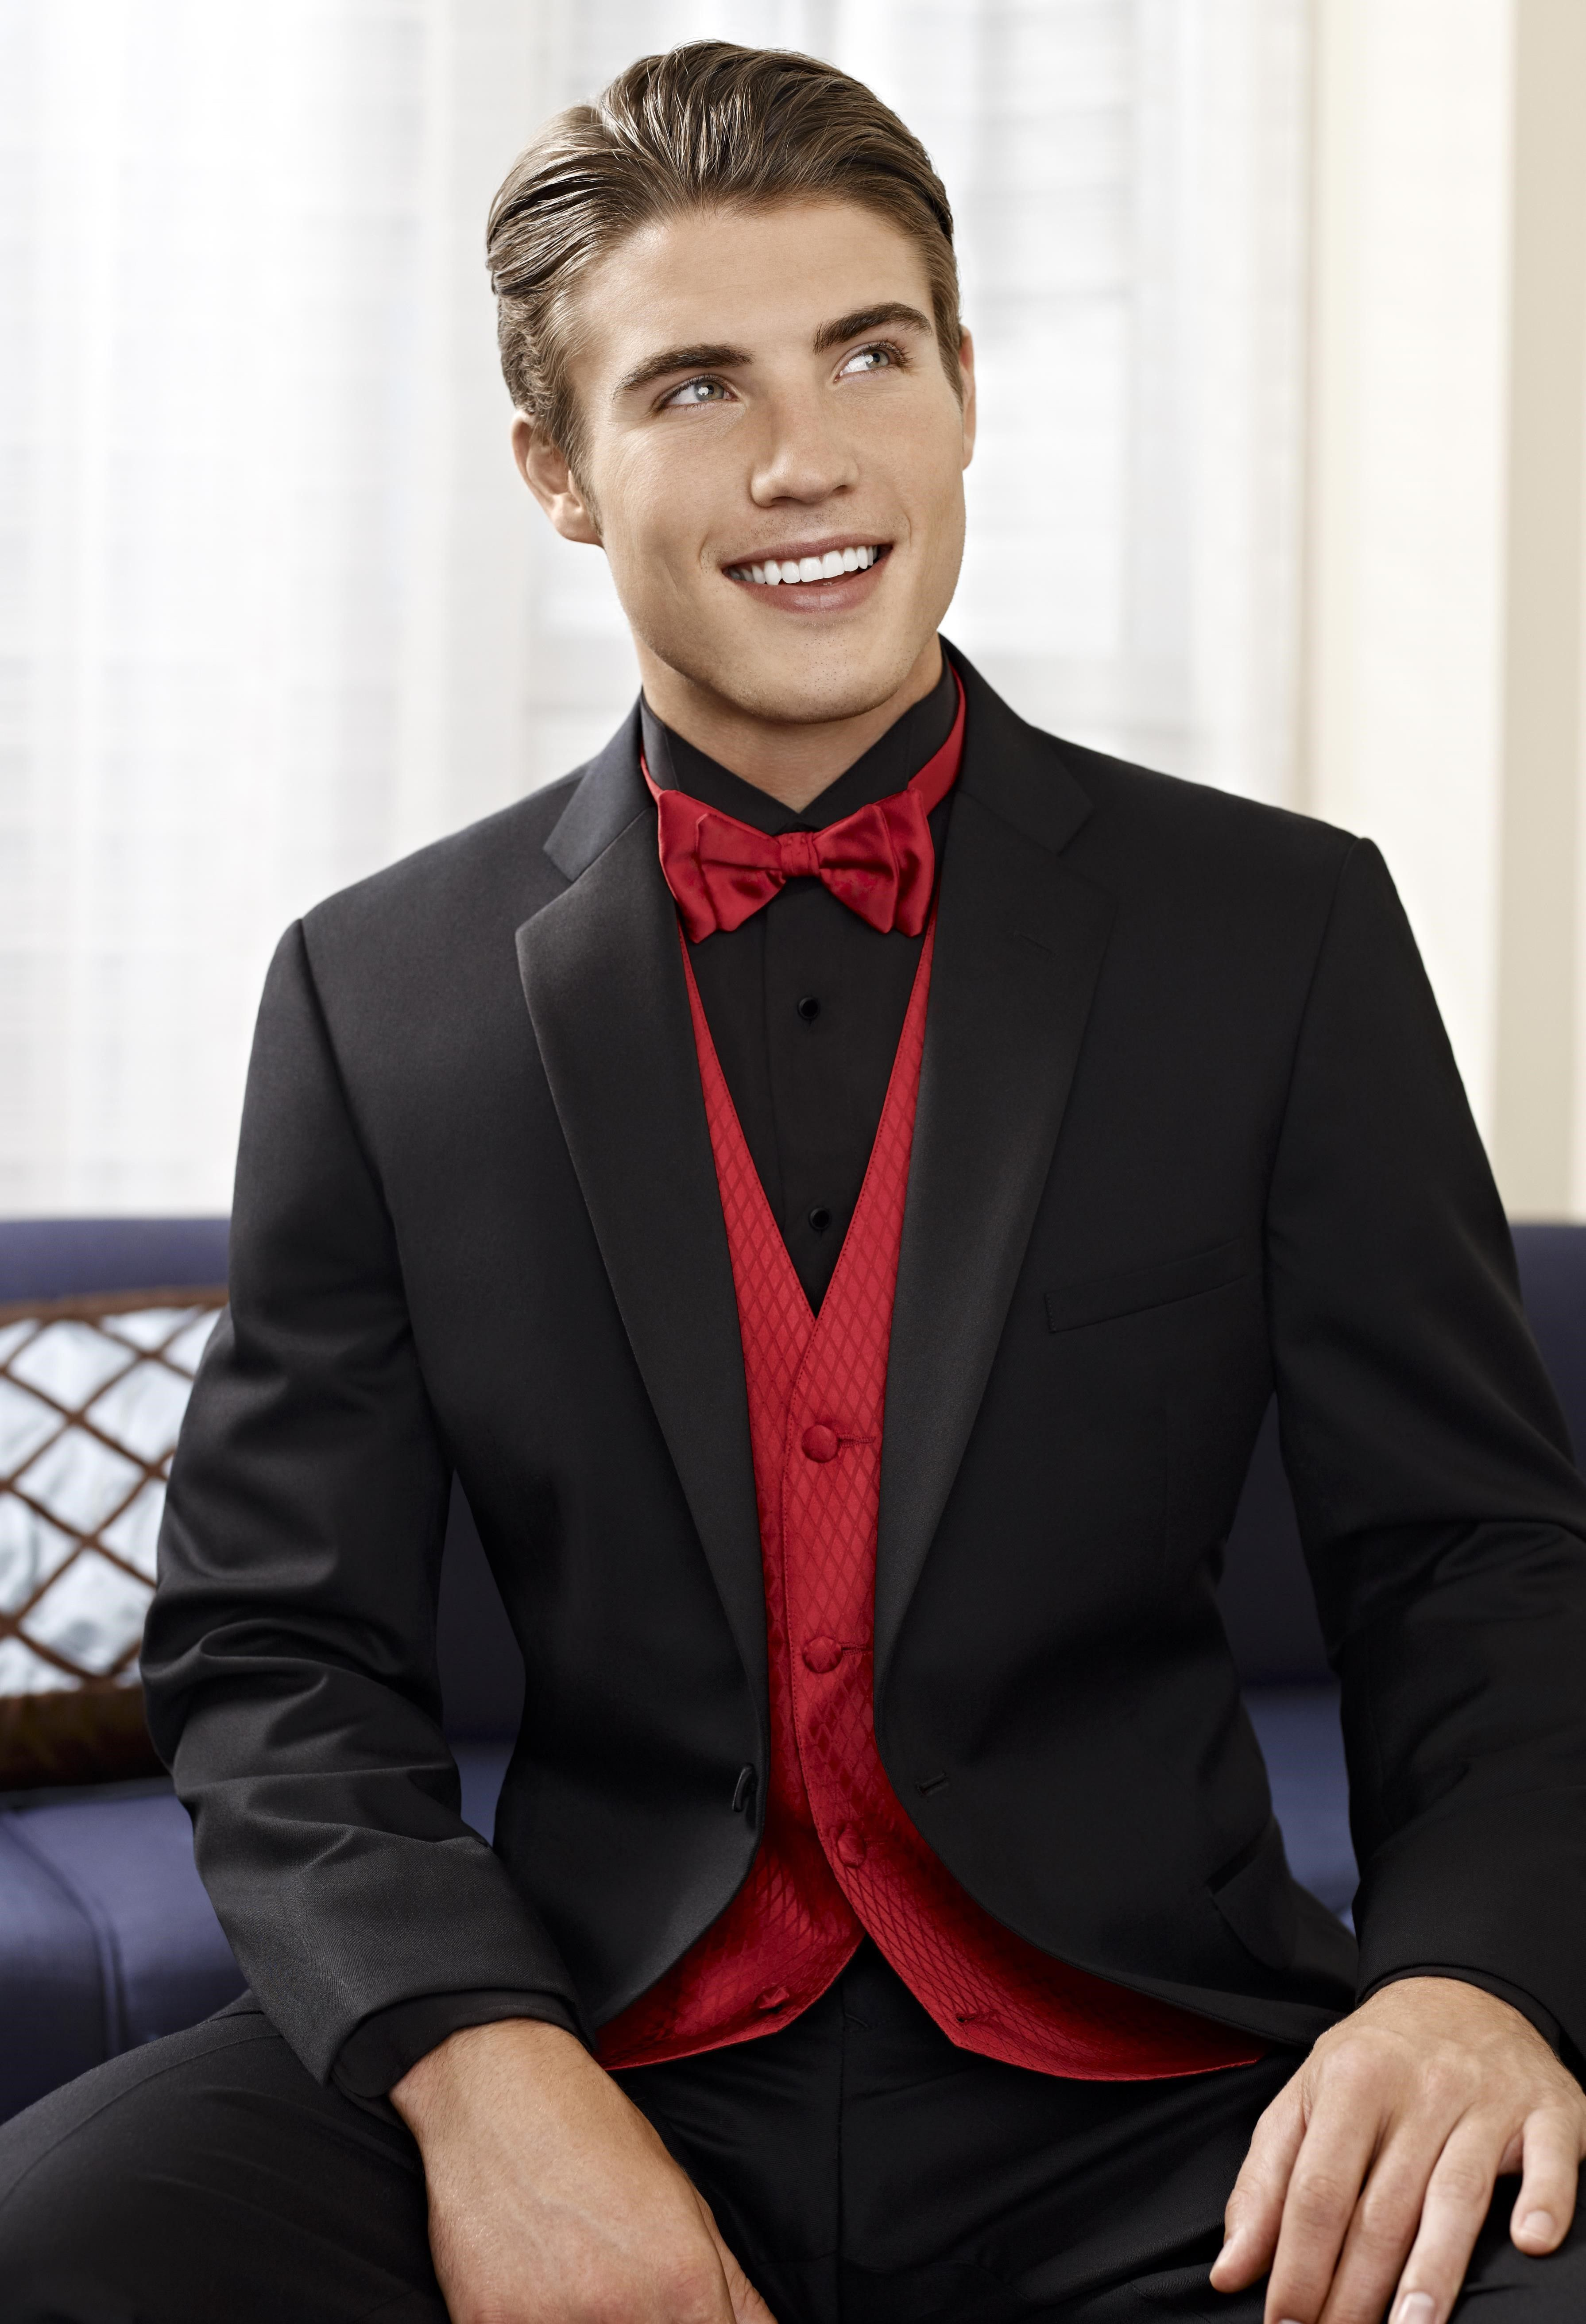 Red Black And White Wedding Tuxedos In 2020 Wedding Suits Men Black Black And Red Suit Black Red Wedding